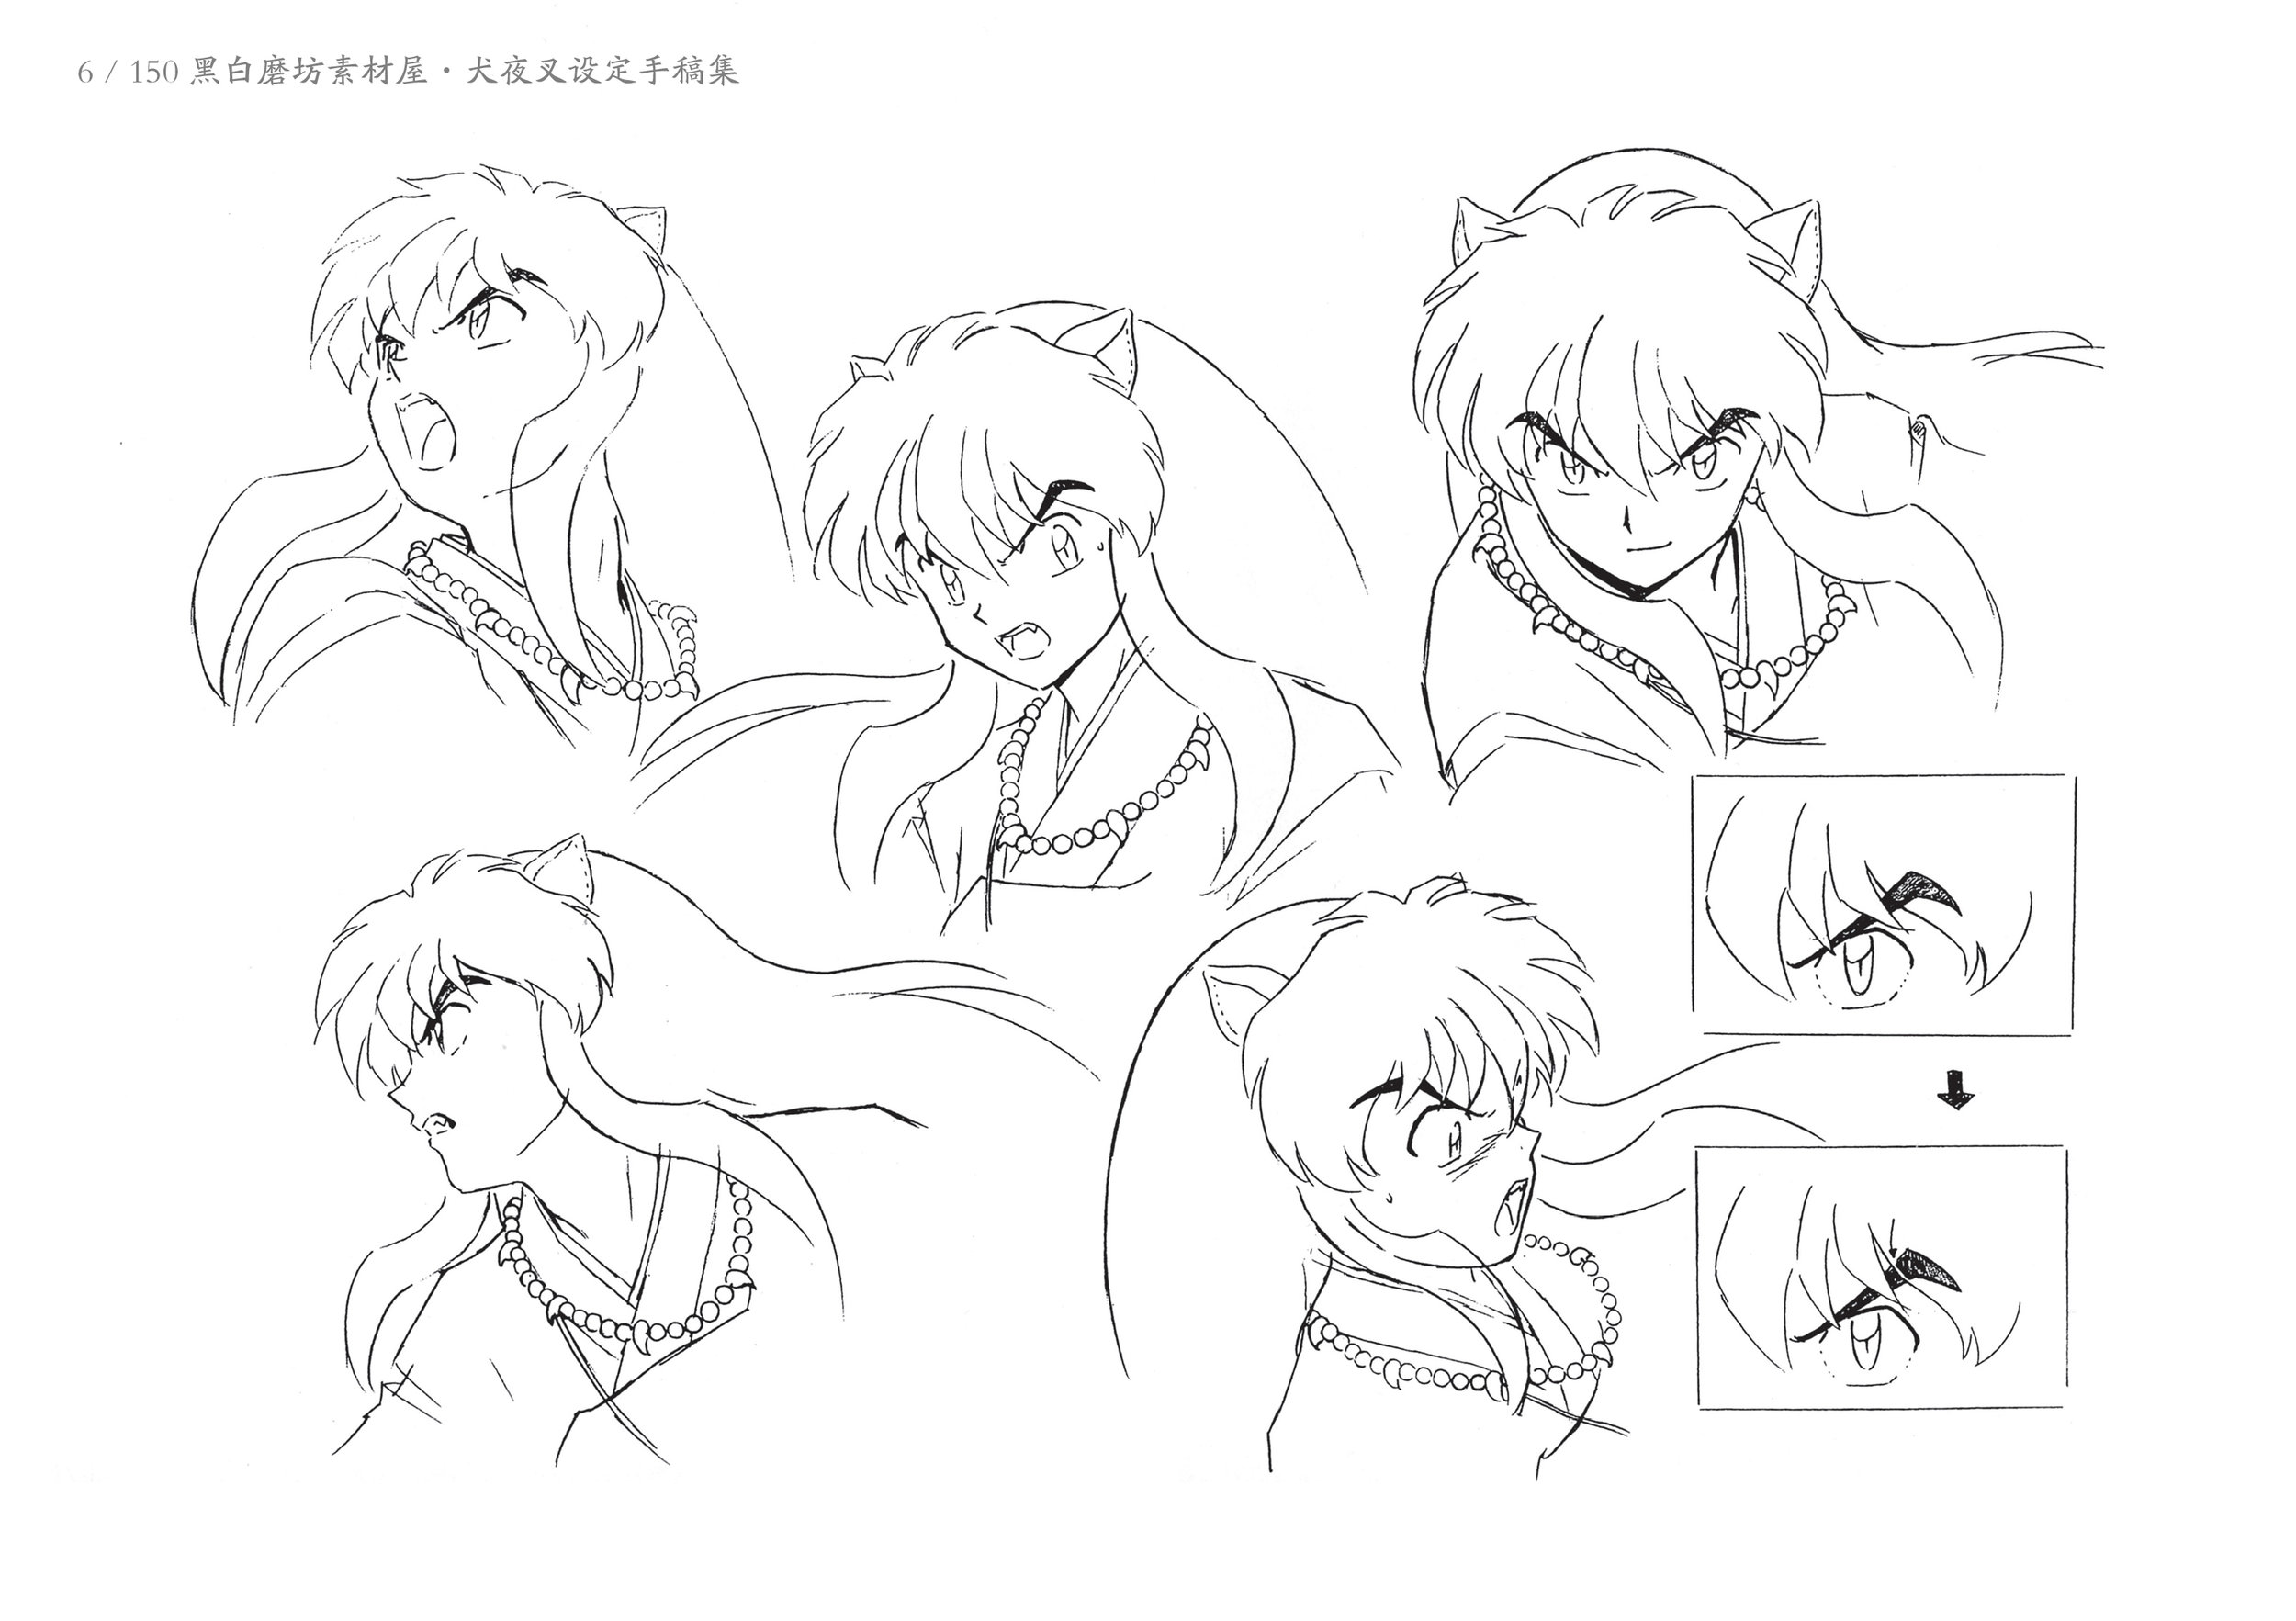 Art of the Inuyasha A - 6.jpg